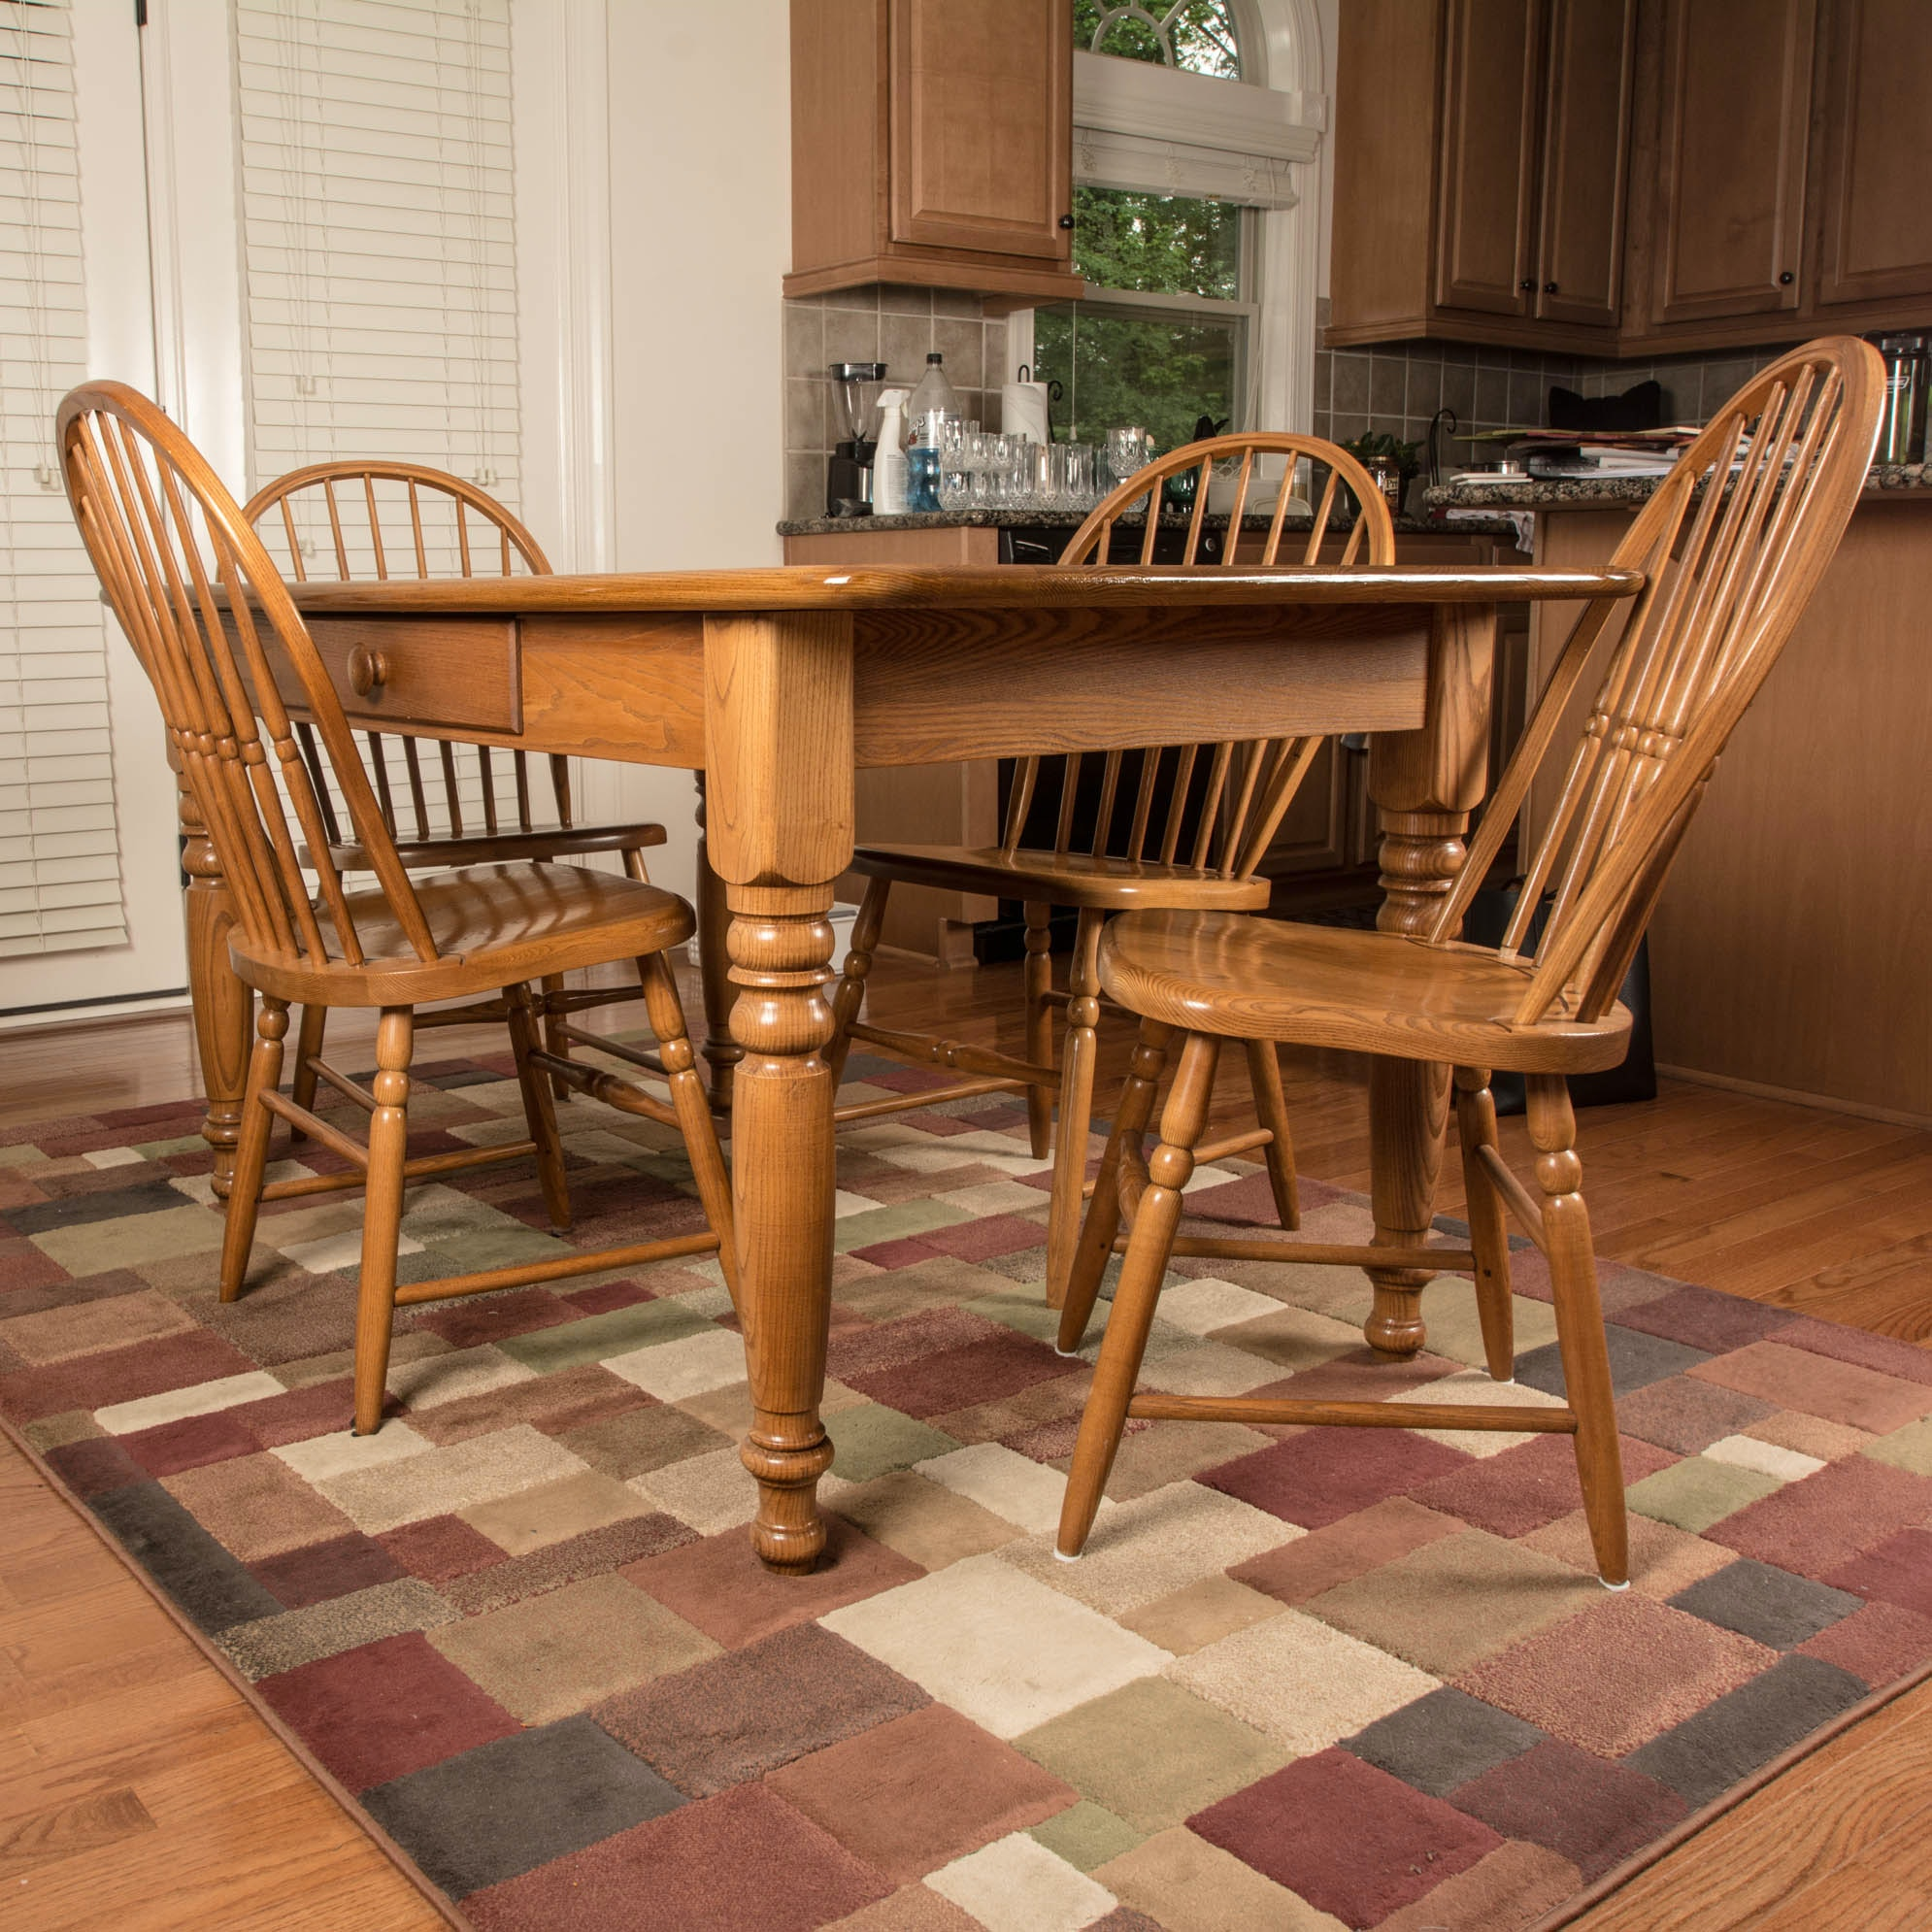 Dining room oak chairs